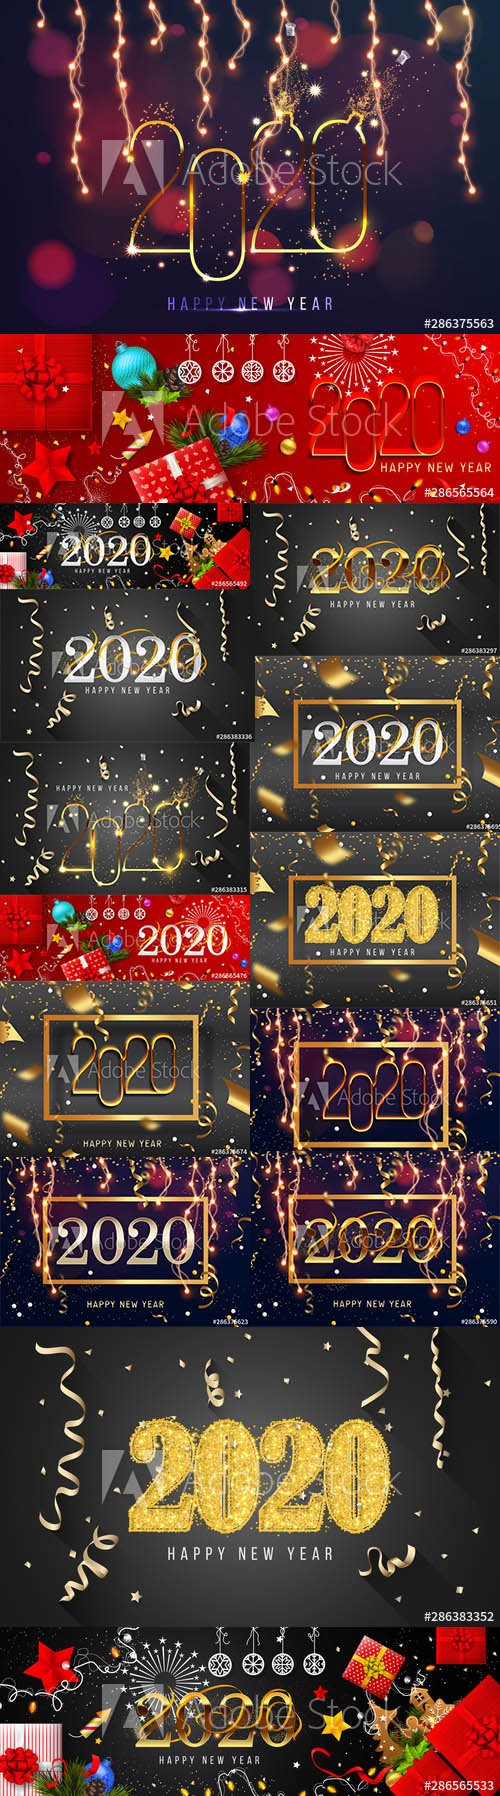 2020 Happy New Year Greeting Card and New Year AI Background vol.7